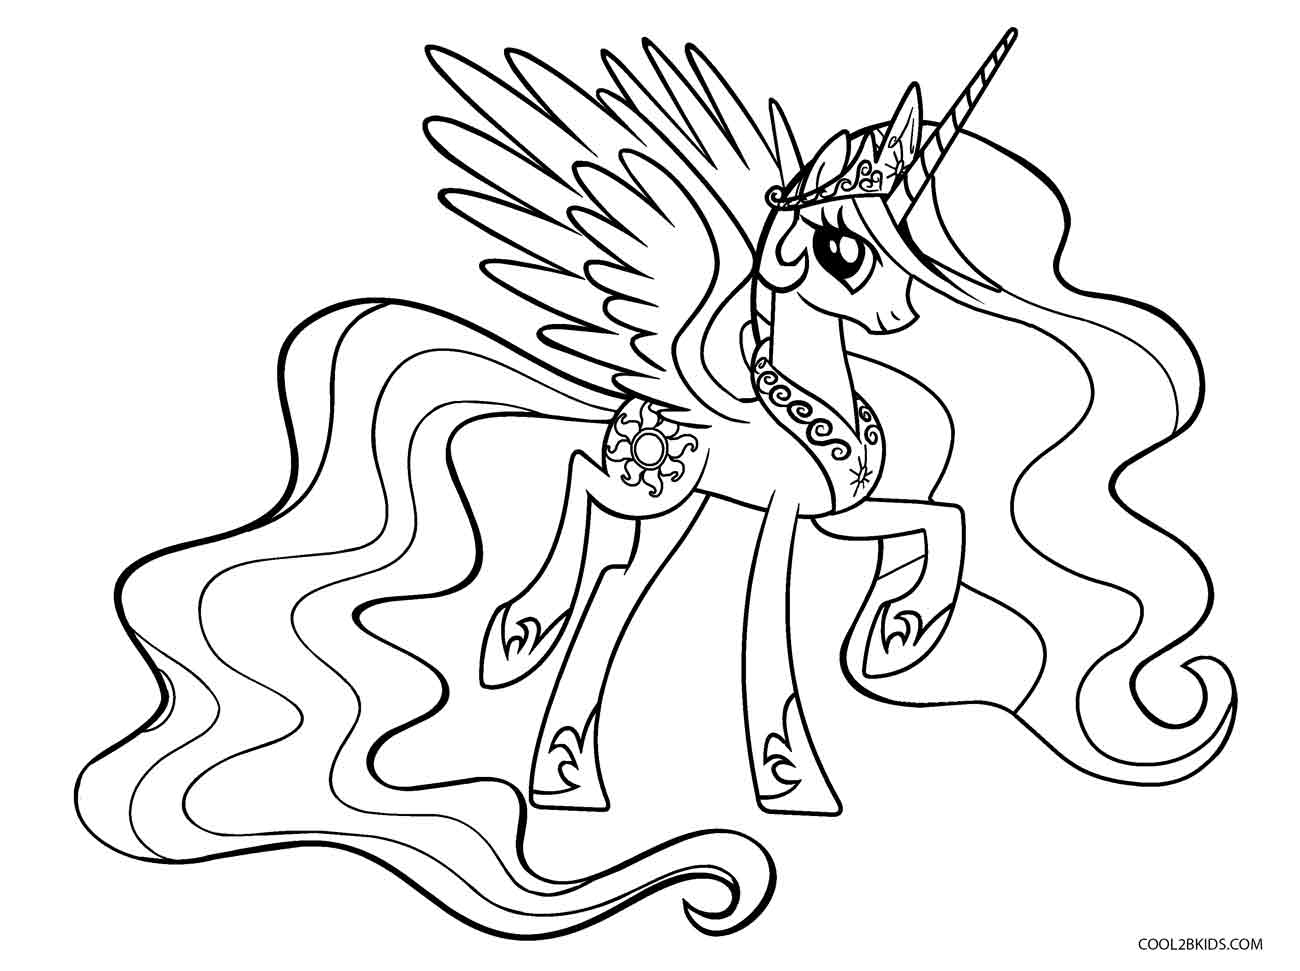 pony images for coloring free printable my little pony coloring pages for kids images pony for coloring